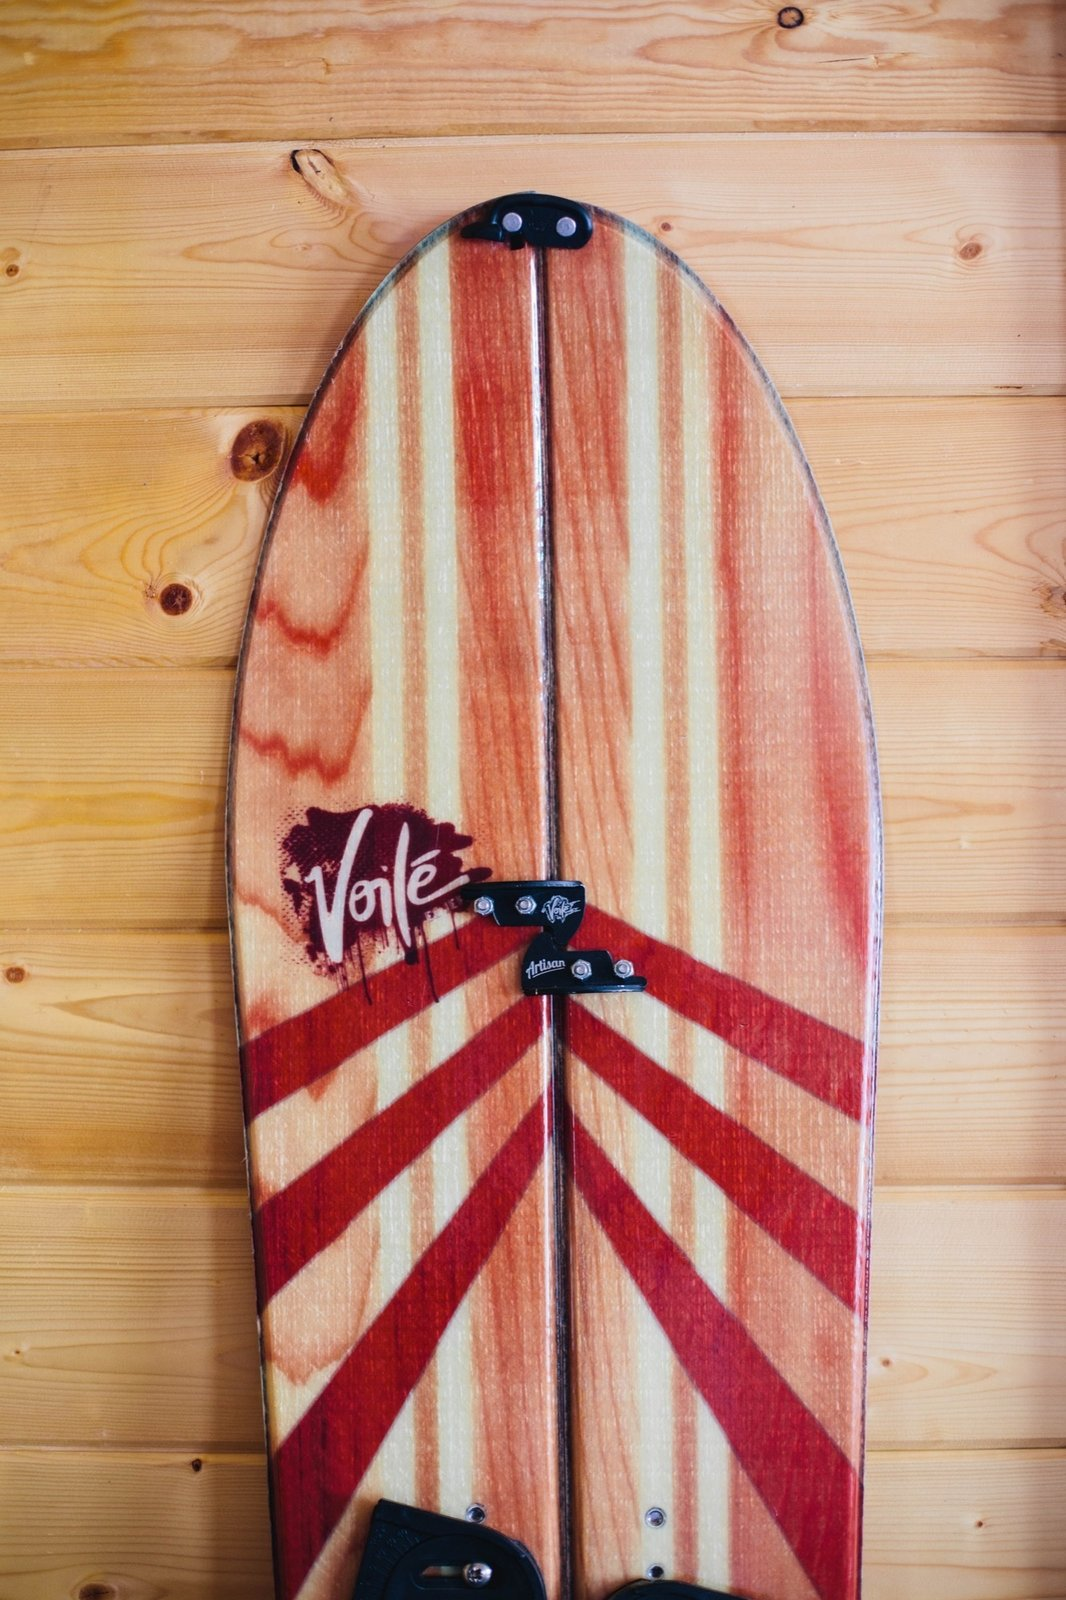 One of the Grants' splitboard